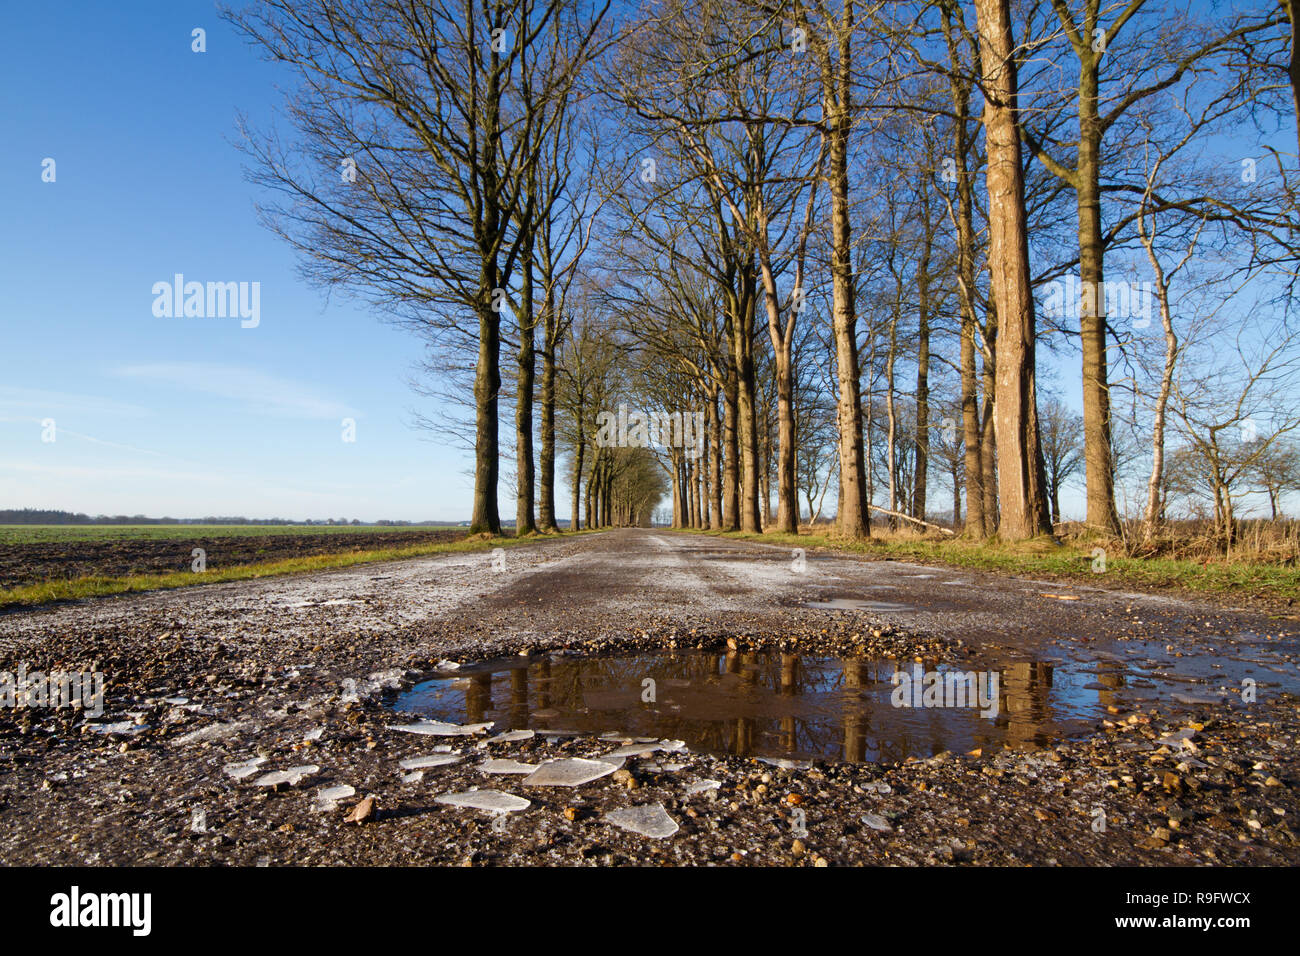 Bad road conditions in winter: frozen puddles in a gravel road - Stock Image